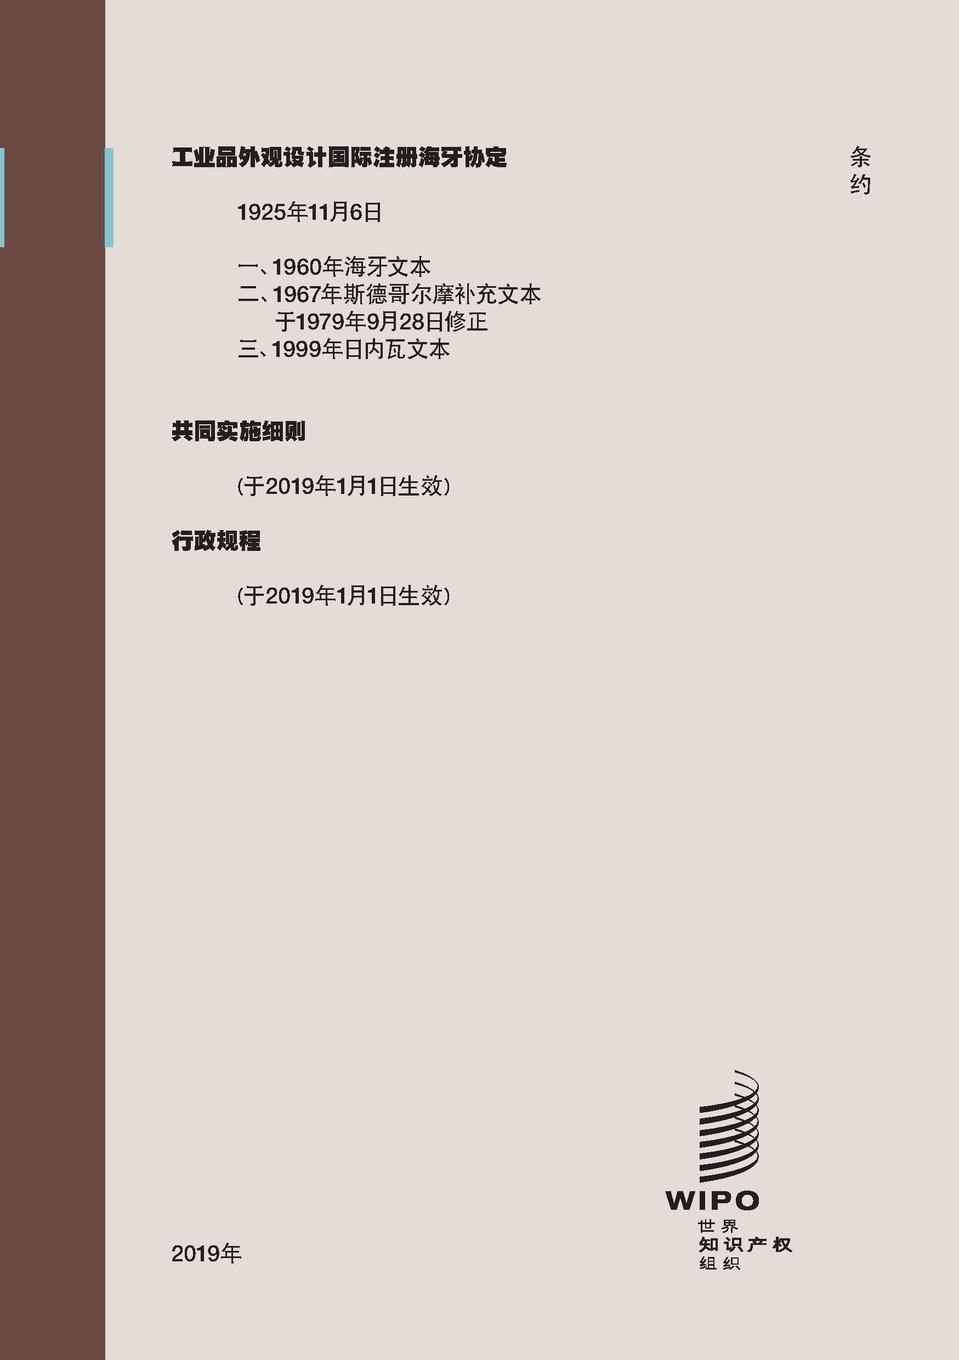 Hague Agreement Concerning the International Registration of Industrial Designs (Chinese edition)